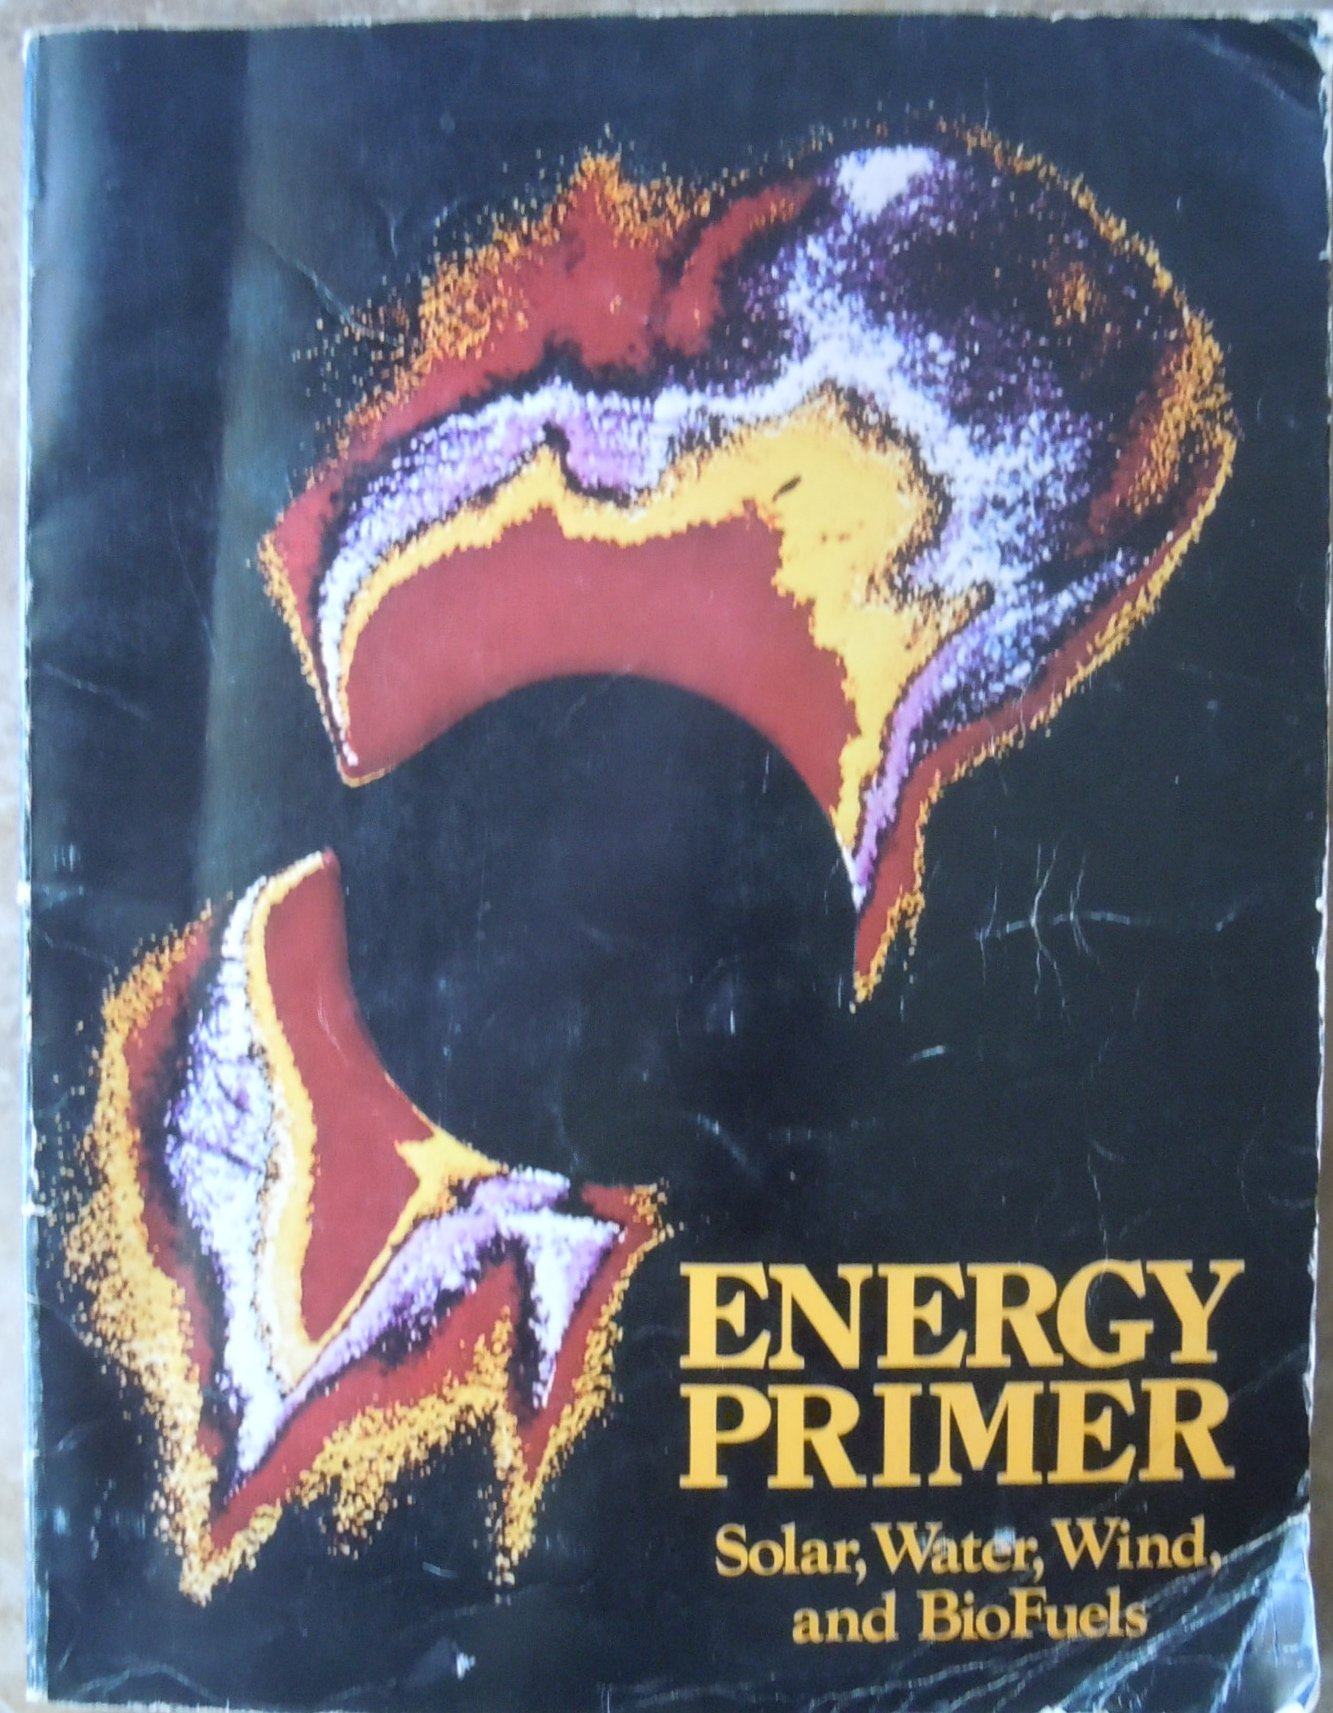 Energy primer, solar, water, wind, and biofuels, Editors